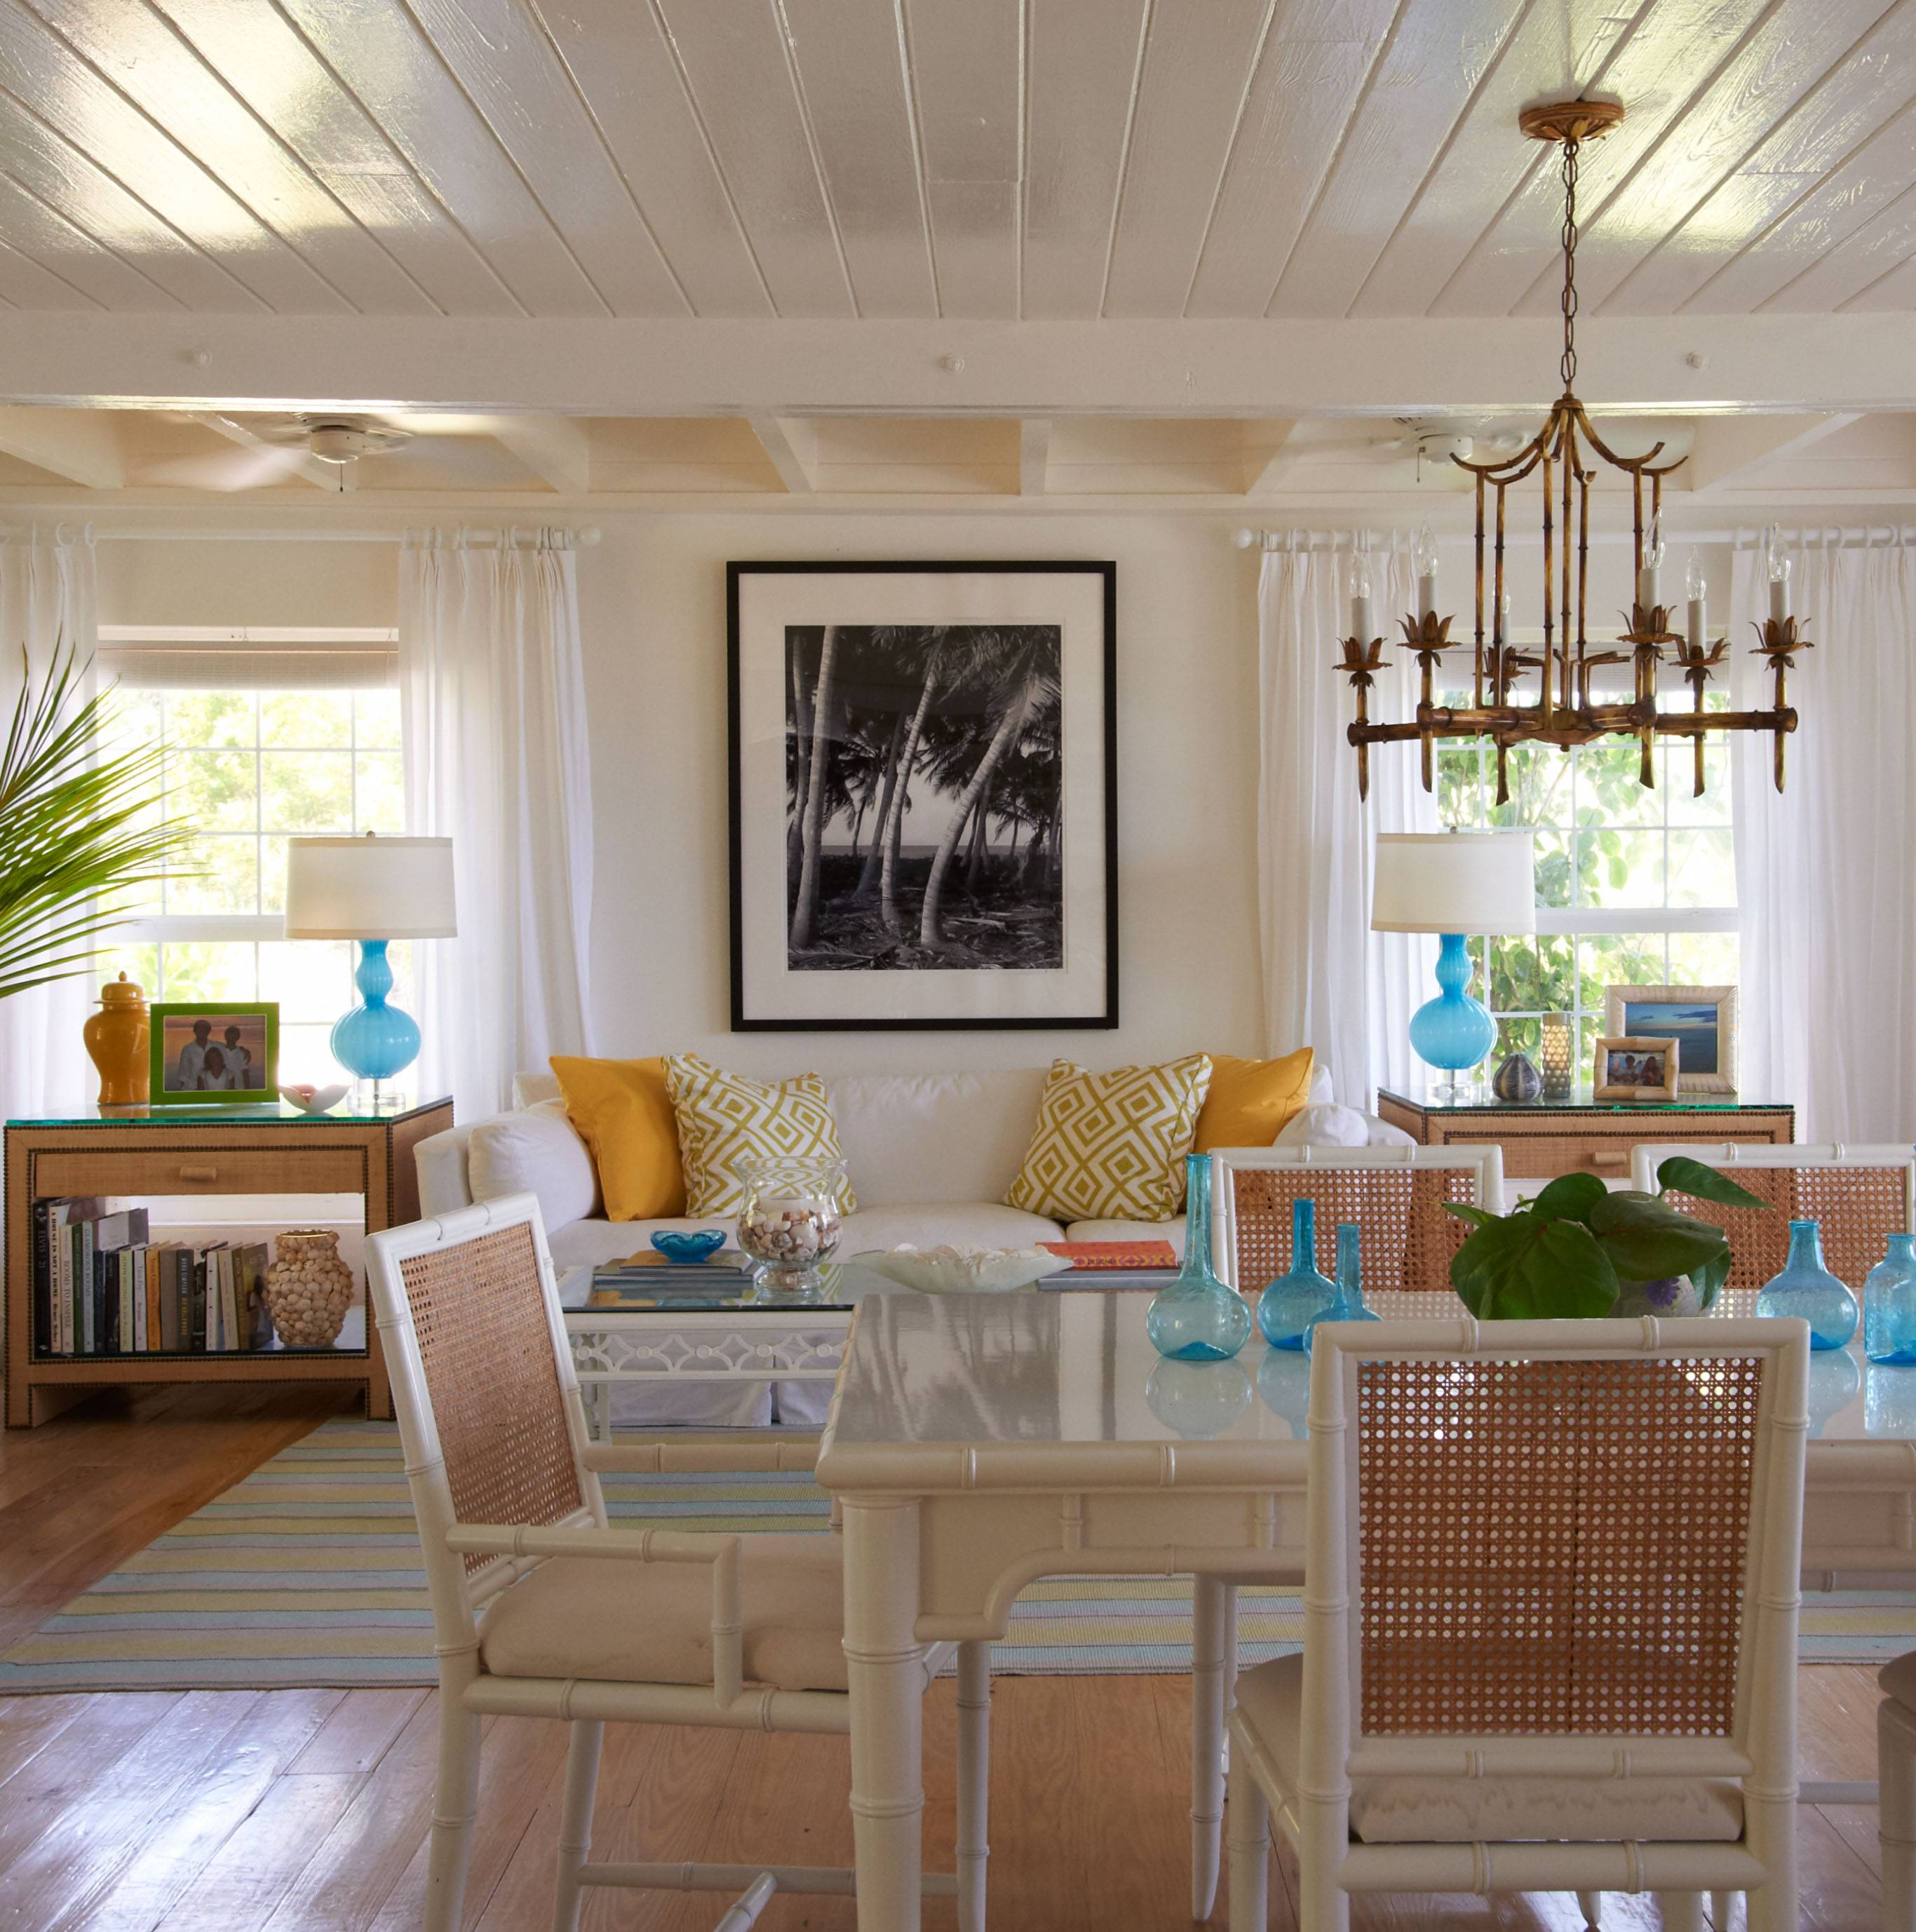 This living and dining room in a home in Harbour Island in the Bahamas was decorated by interior designer Jan Showers.